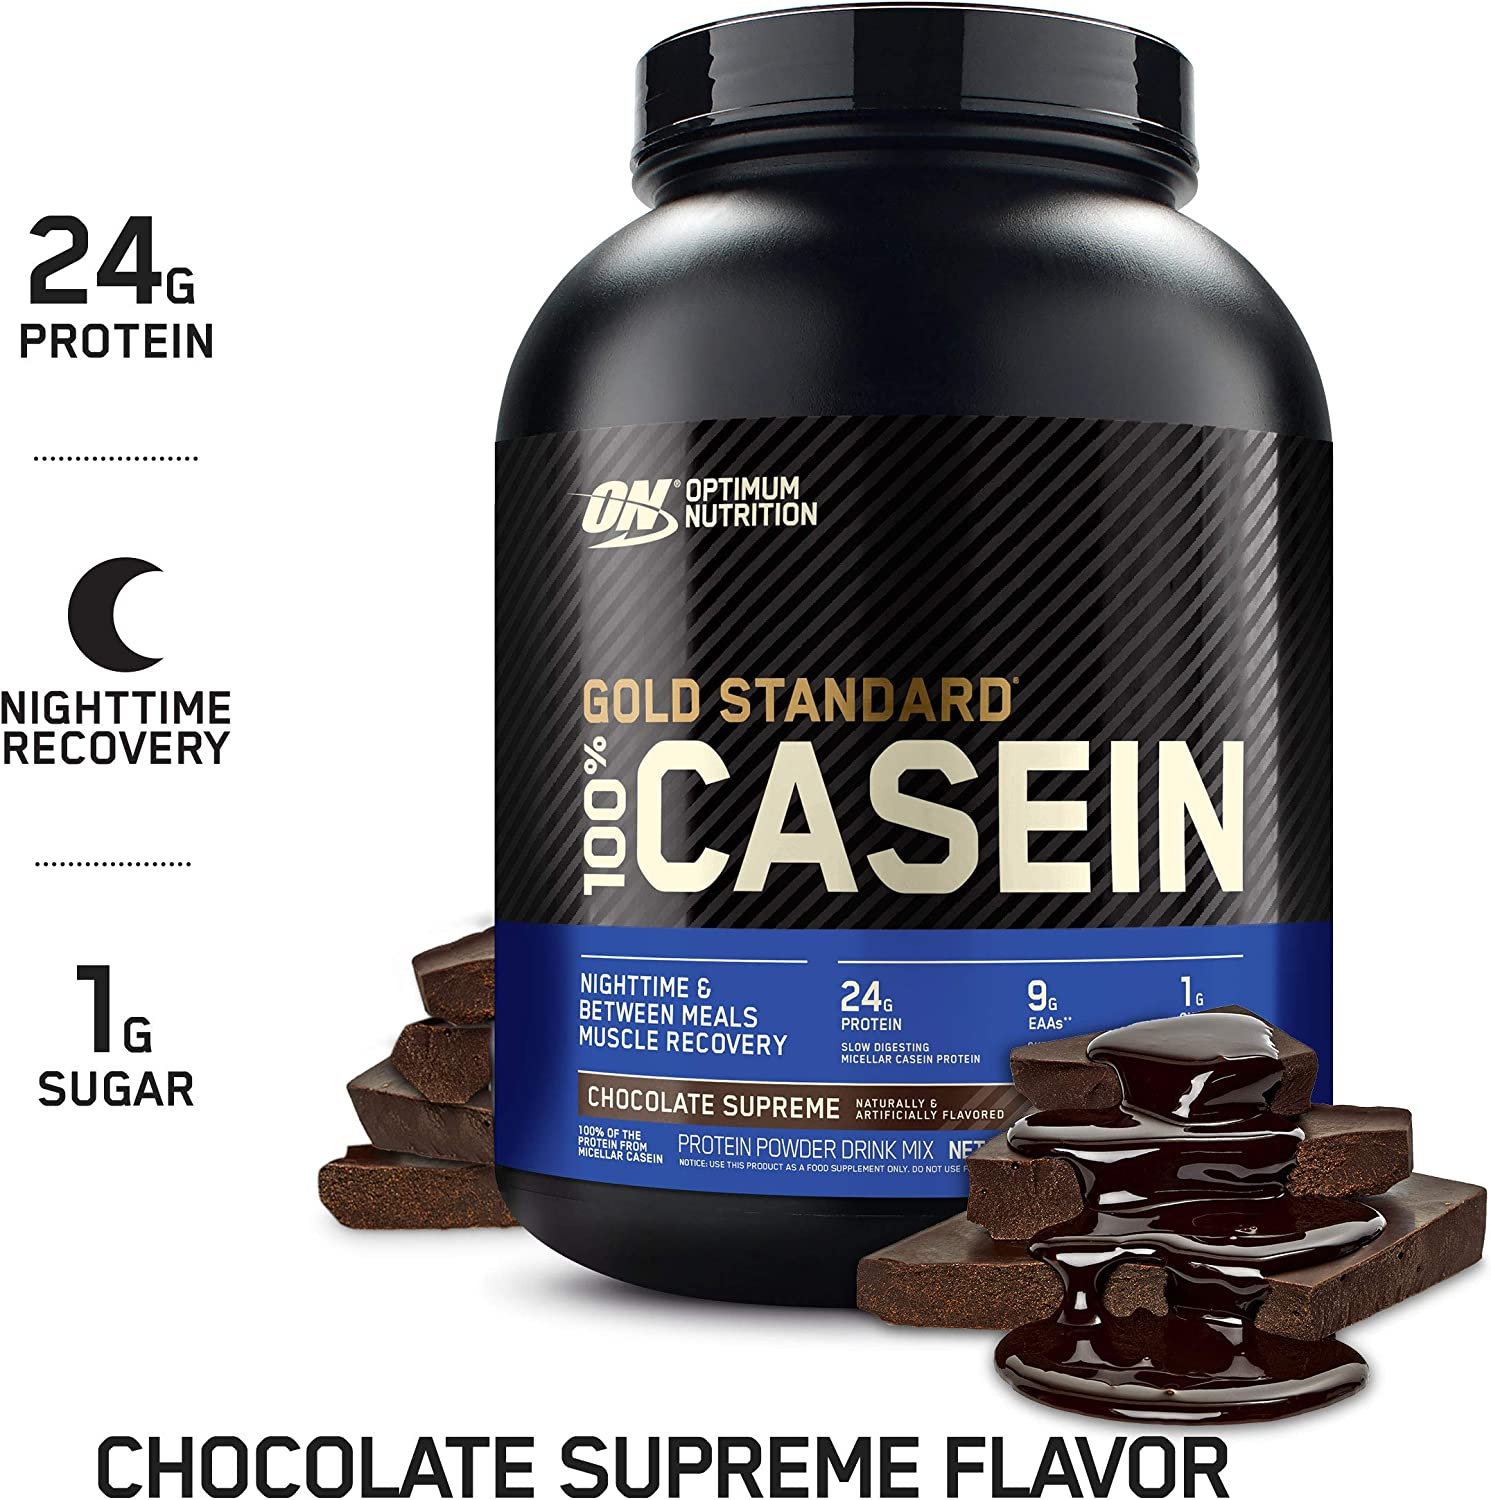 Optimum Nutrition Gold Standard 100% Micellar Casein Protein Powder, Slow Digesting, Helps Keep You Full, Overnight Muscle Recovery, Chocolate Supreme, 4 Pound (Packaging May Vary): Health & Personal Care